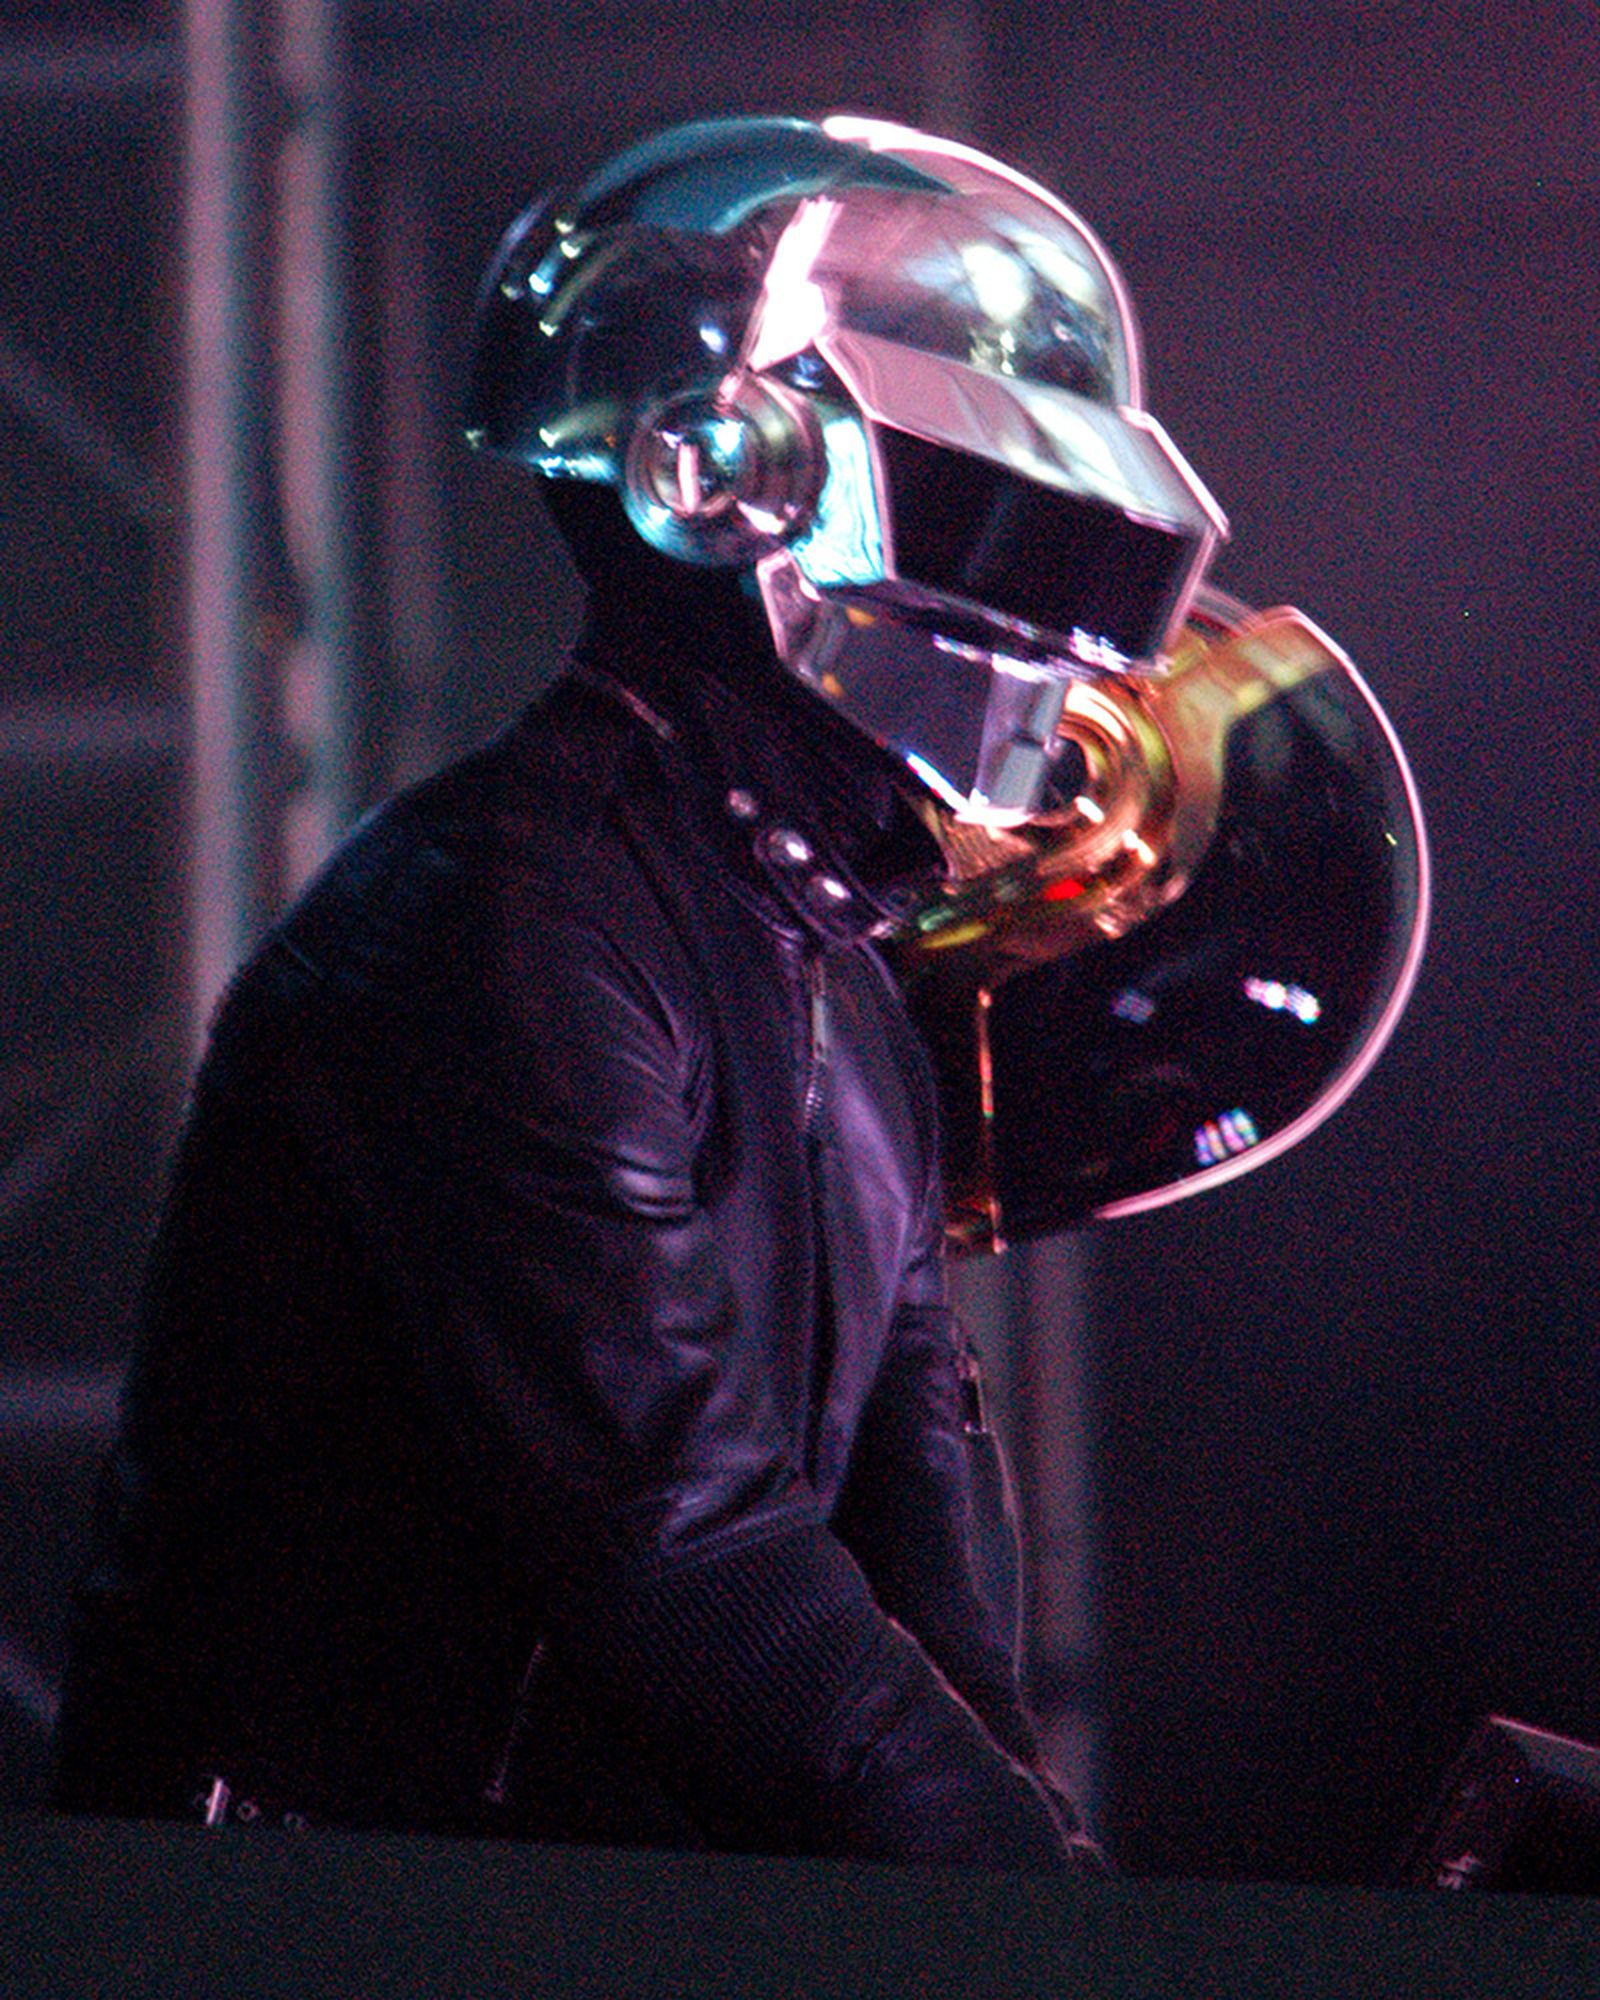 remembering-10-years-of-daft-punk-through-the-eyes-of-a-superfan-03